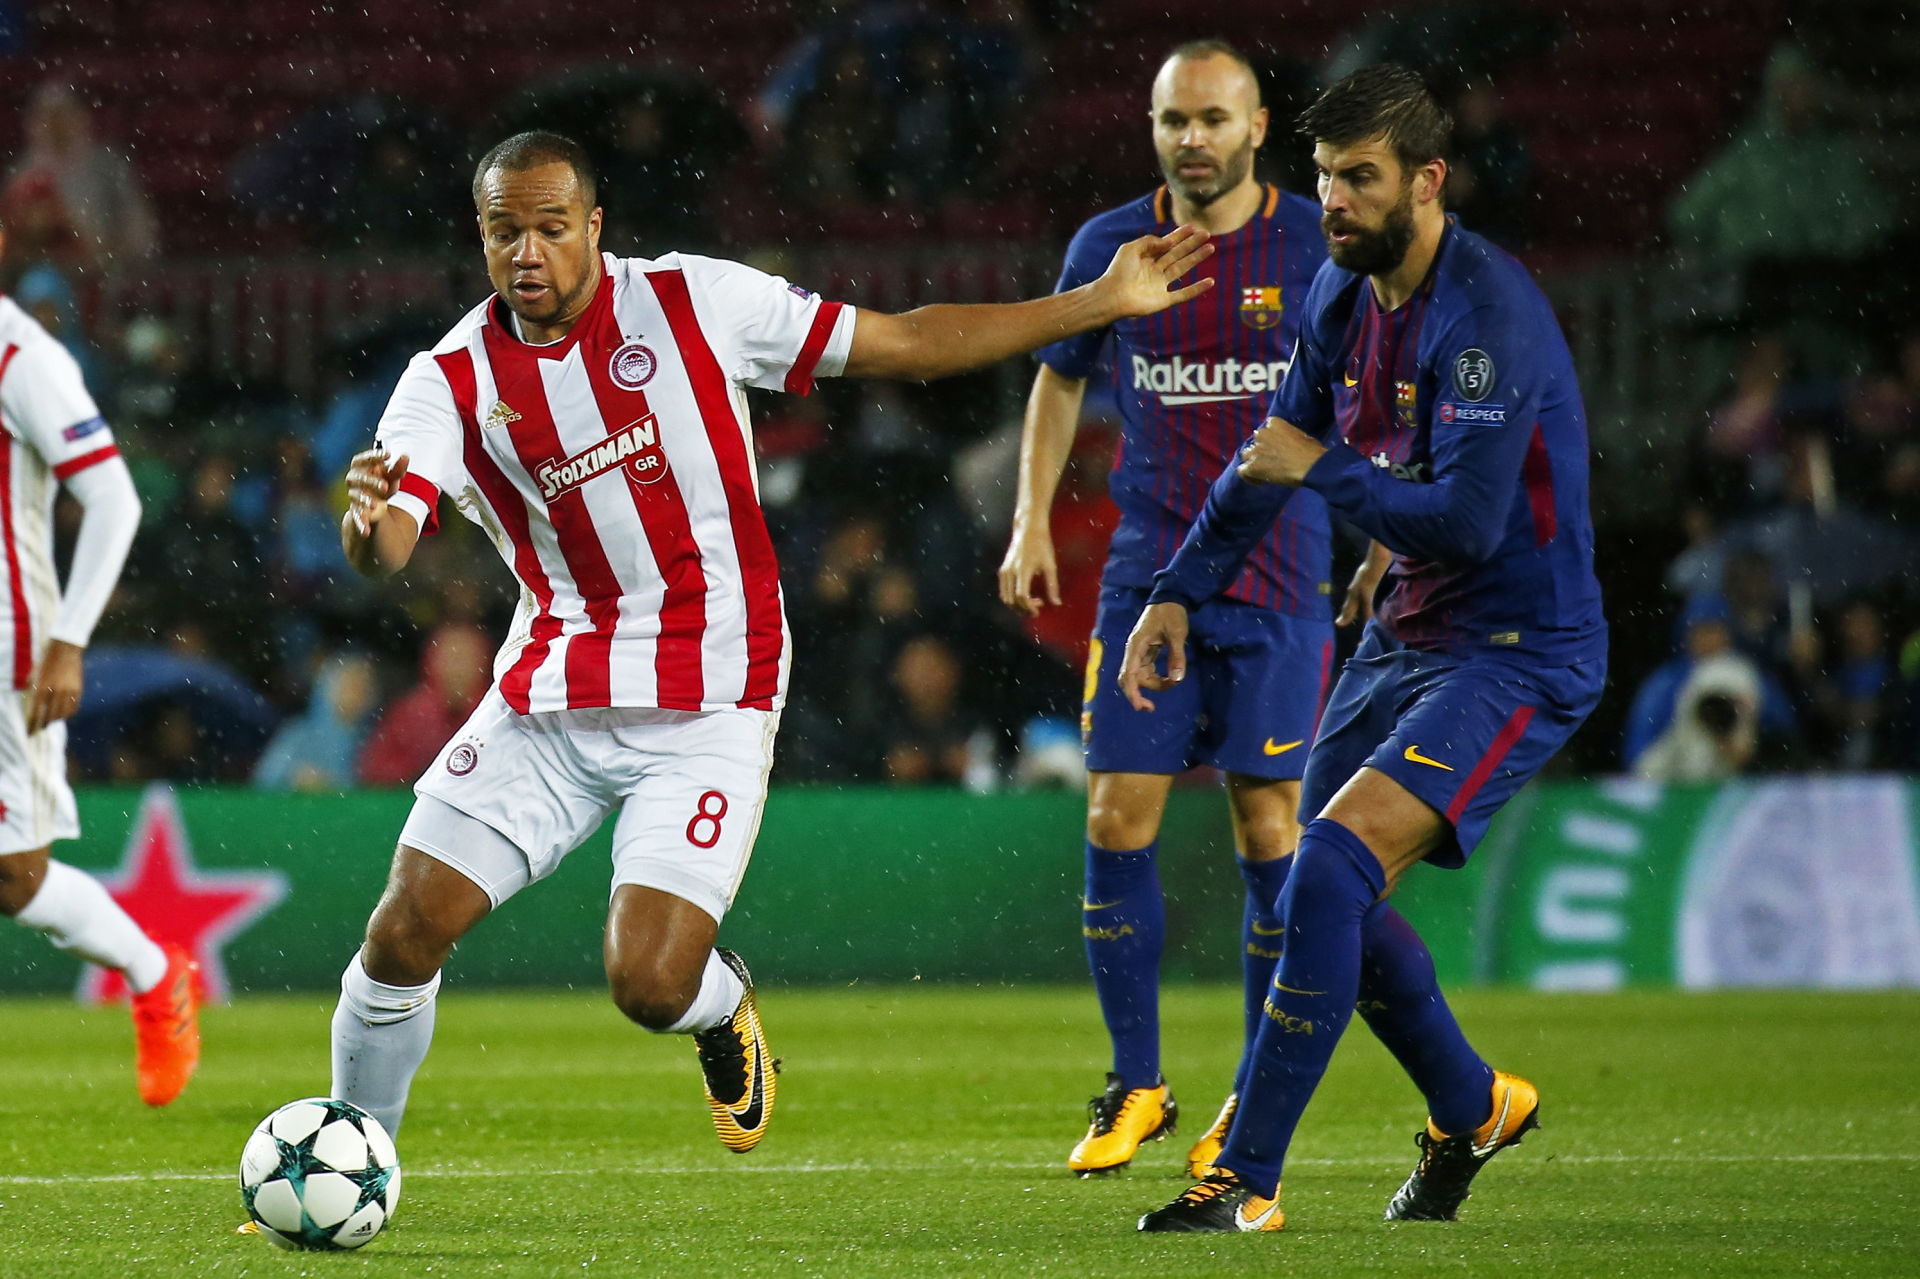 October 18, 2017 - Barcelona, Spain - Vadis Odjidja during Champions League match between FC Barcelona v Olympiakos FC , in Barcelona, on October 18, 2017. Photo: Joan Valls/Urbanandsport/Nurphoto (Credit Image: © Joan Valls/NurPhoto via ZUMA Press) LIGA MISTRZOW PILKA NOZNA SEZON 2017/2018 FOT.ZUMA/NEWSPIX.PL POLAND ONLY!!! --- Newspix.pl *** Local Caption *** www.newspix.pl mail us: info@newspix.pl call us: 0048 022 23 22 222 --- Polish Picture Agency by Ringier Axel Springer Poland